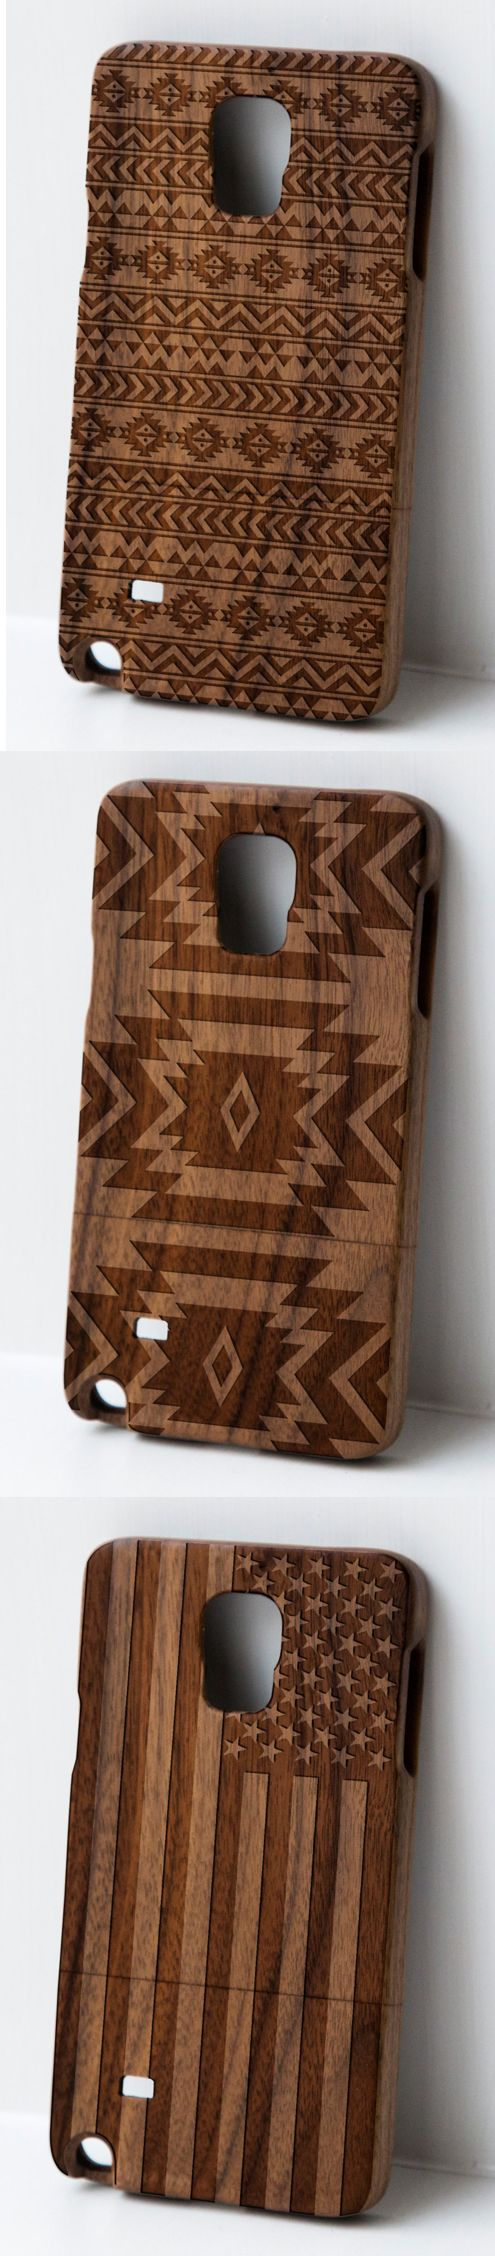 Ethnic Floral Design Bamboo wooden samsung galaxy case, wooden note 3 case case, cute samsung case, unique samsung case, bamboo samsung case, unique walnut case, walnut samsung galaxy case, s5 case, s4 case, note 3 case, note 4 case, wooden note 4 case, wooden note 3 case, wooden s4 case, wooden s5 case.